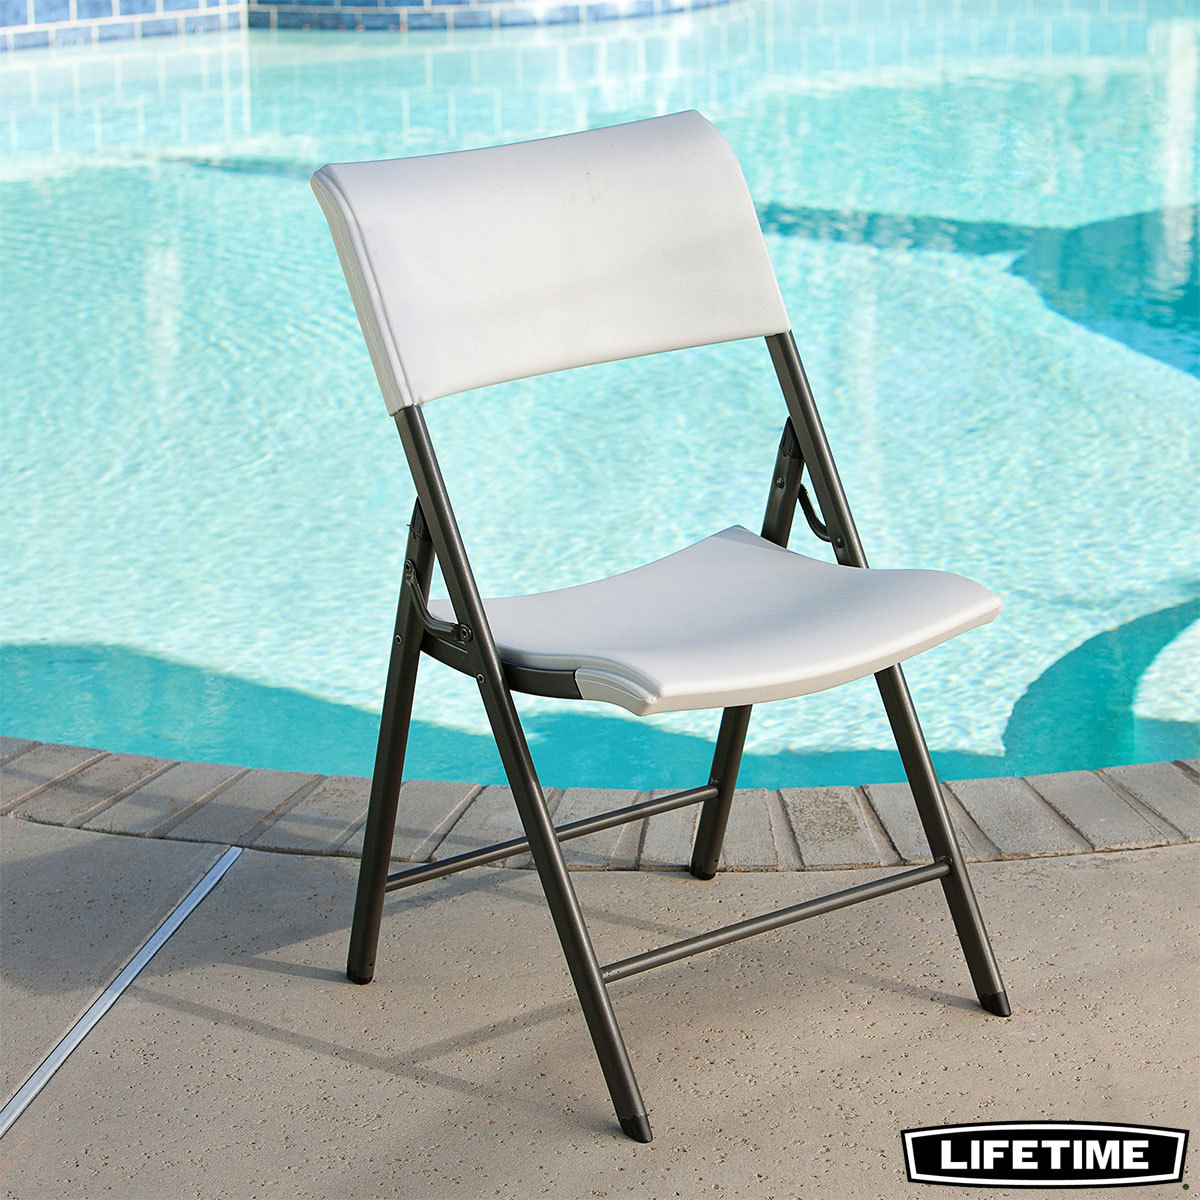 Lifetime Chair Lifetime Folding Chair Light Commercial Pack Of 4 Costco Uk